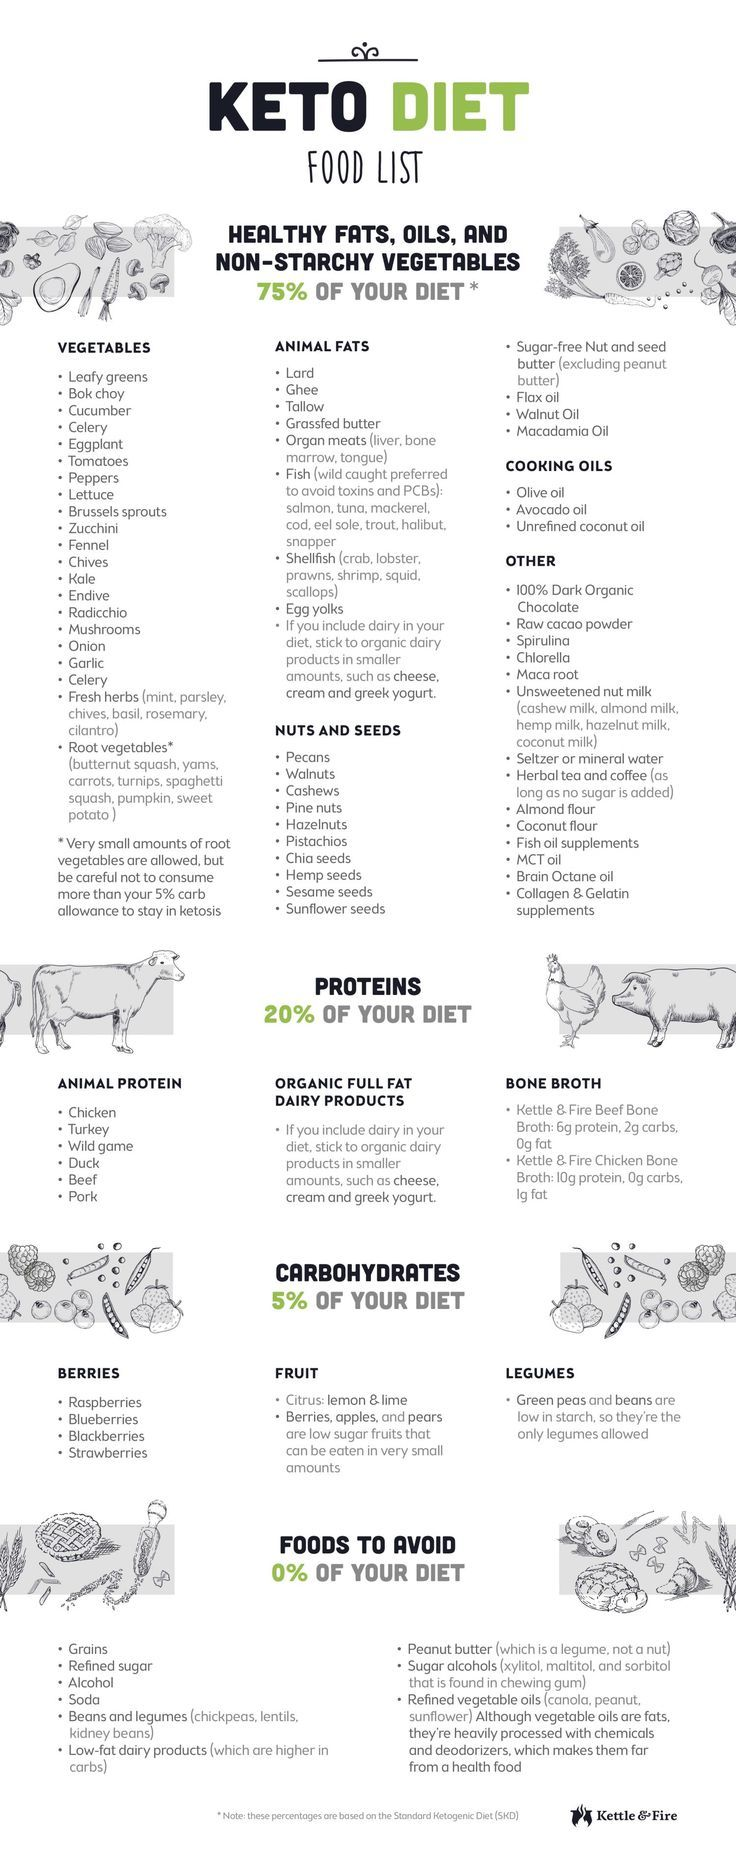 Keto Diet Plan: A detailed keto diet food list to help guide your choices when it comes to groce…